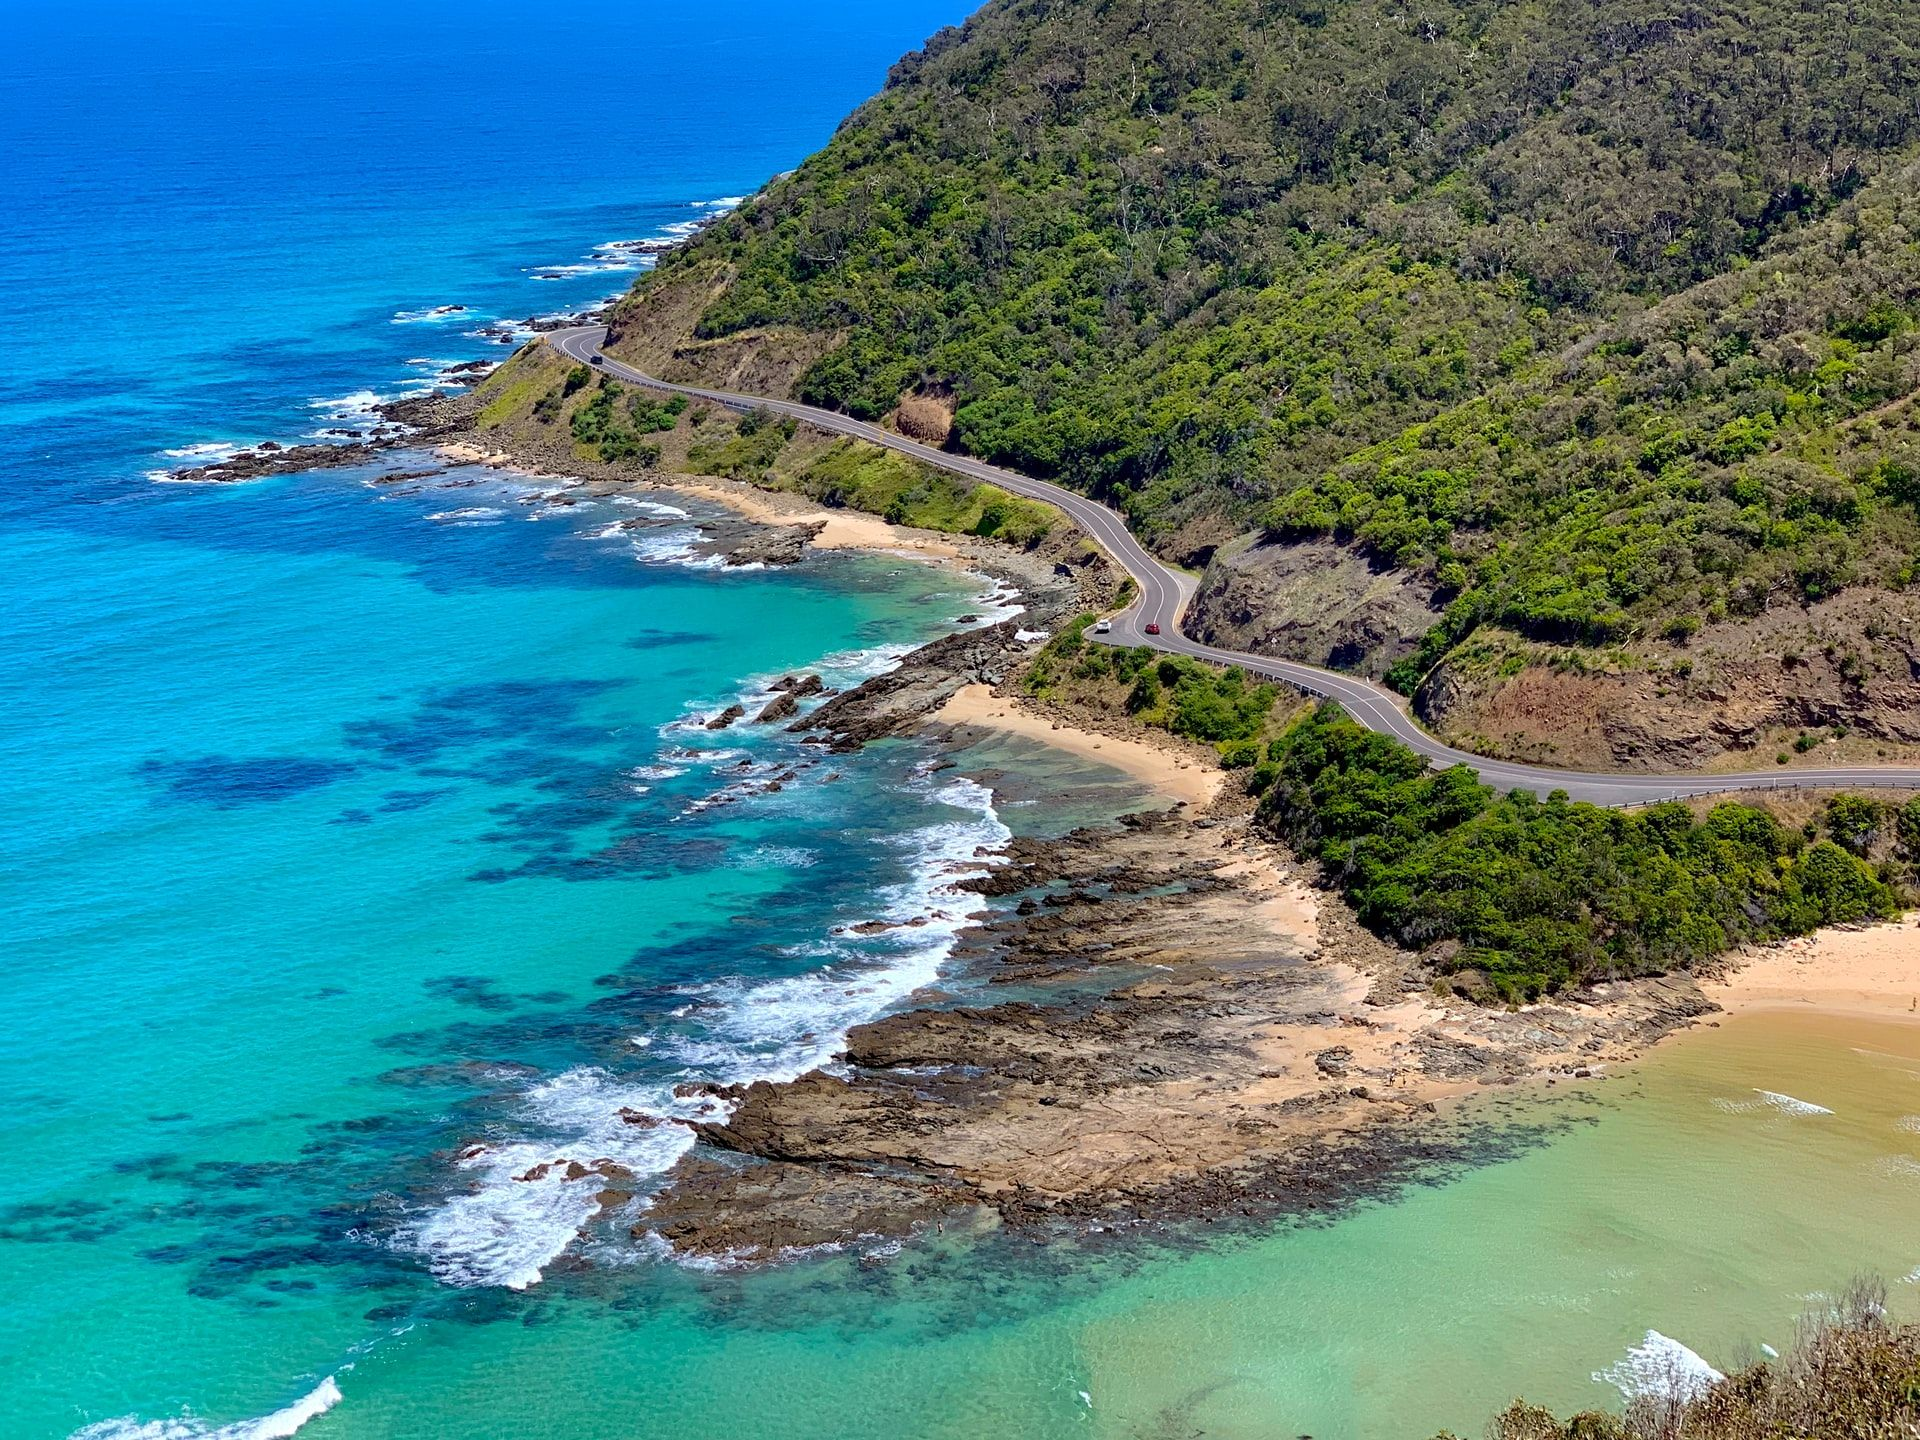 Australia's Great Ocean Road, one of the most Instagrammed road trips